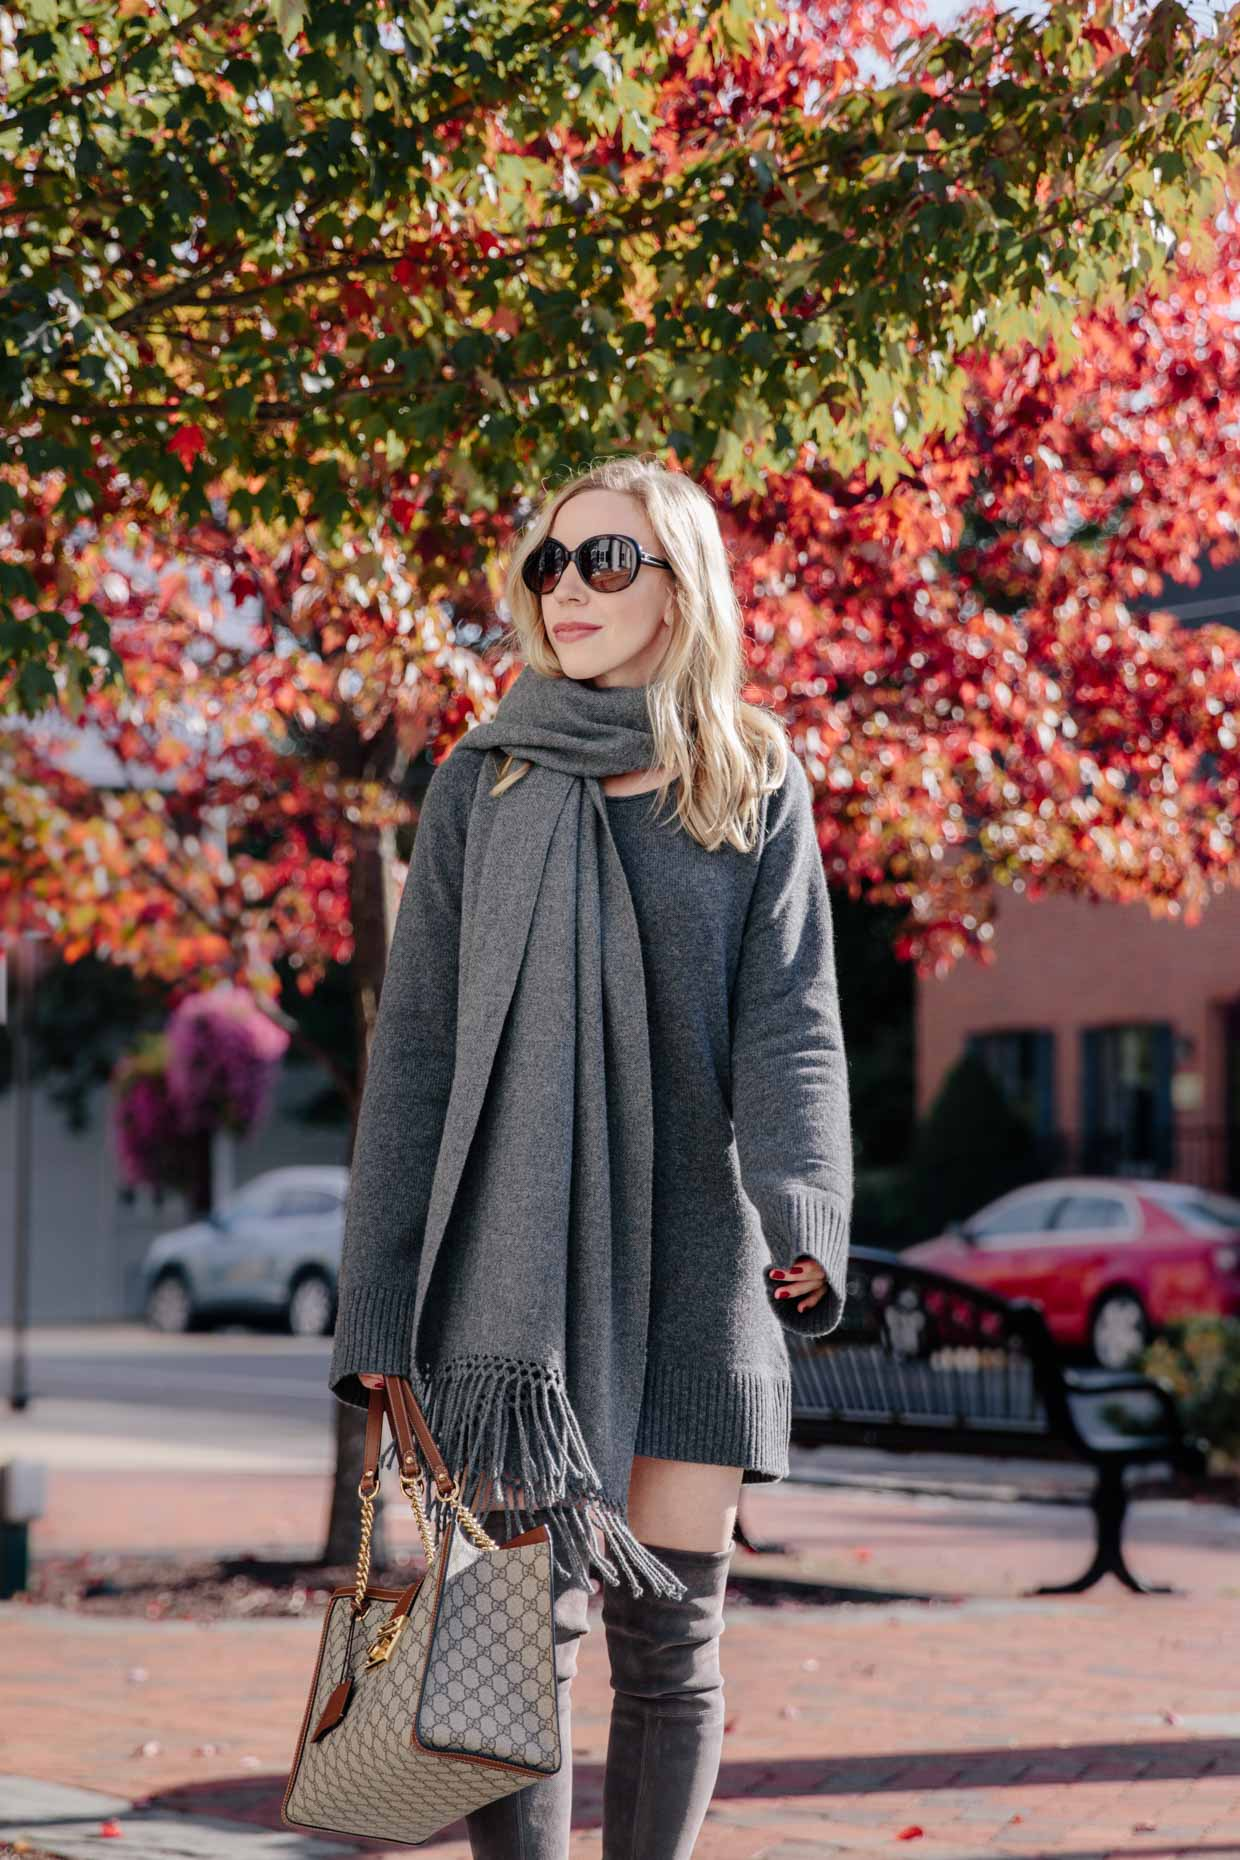 Meagan Brandon fashion blogger of Meagan's Moda wears State Cashmere gray mini sweater dress with oversized scarf and over the knee boots